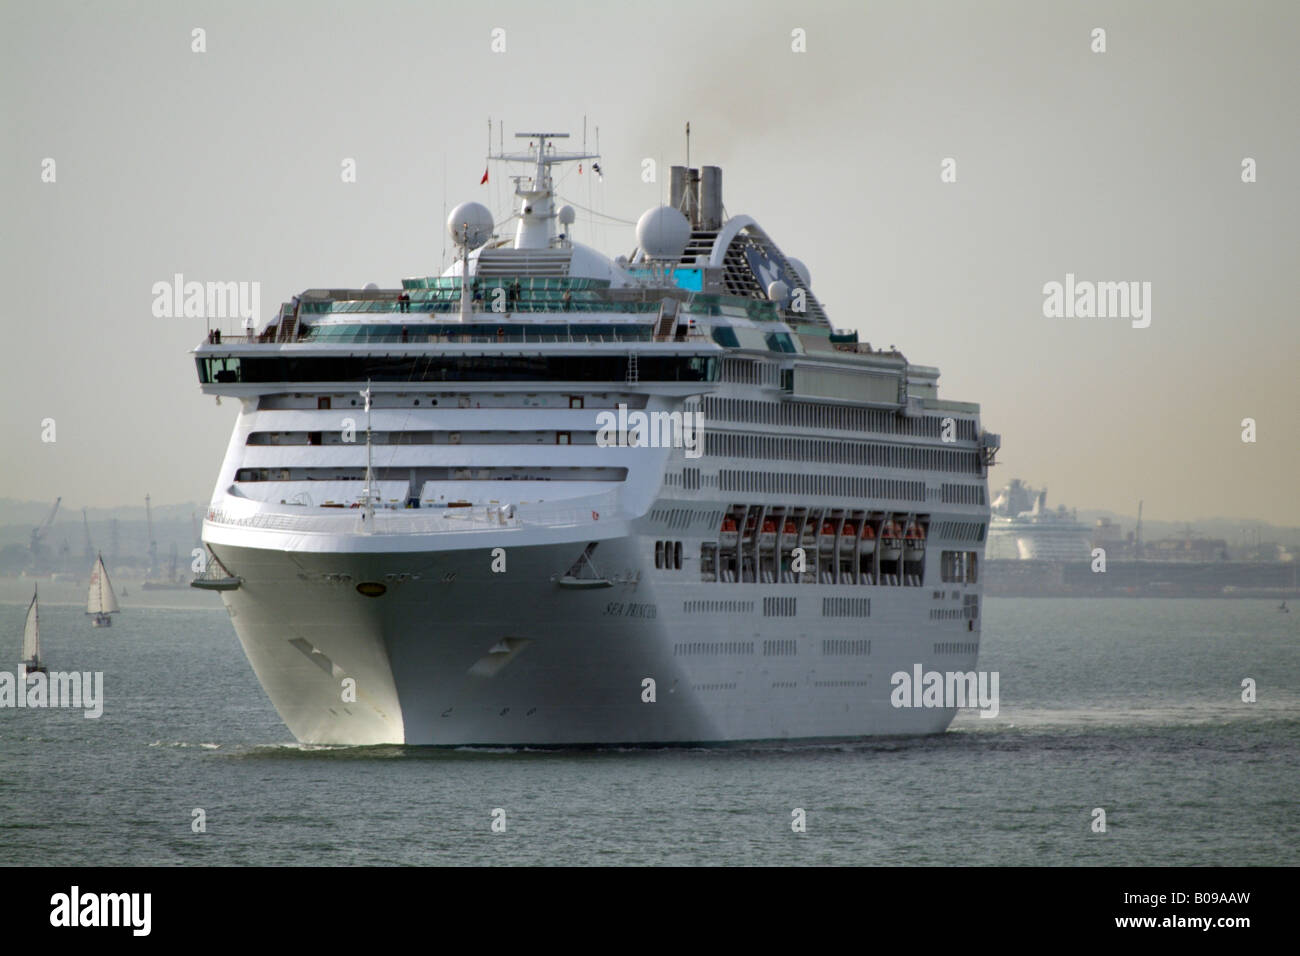 The Sea Princess Cruise Ship Outbound from Southampton England UK Underway on Southampton Water in evening light - Stock Image